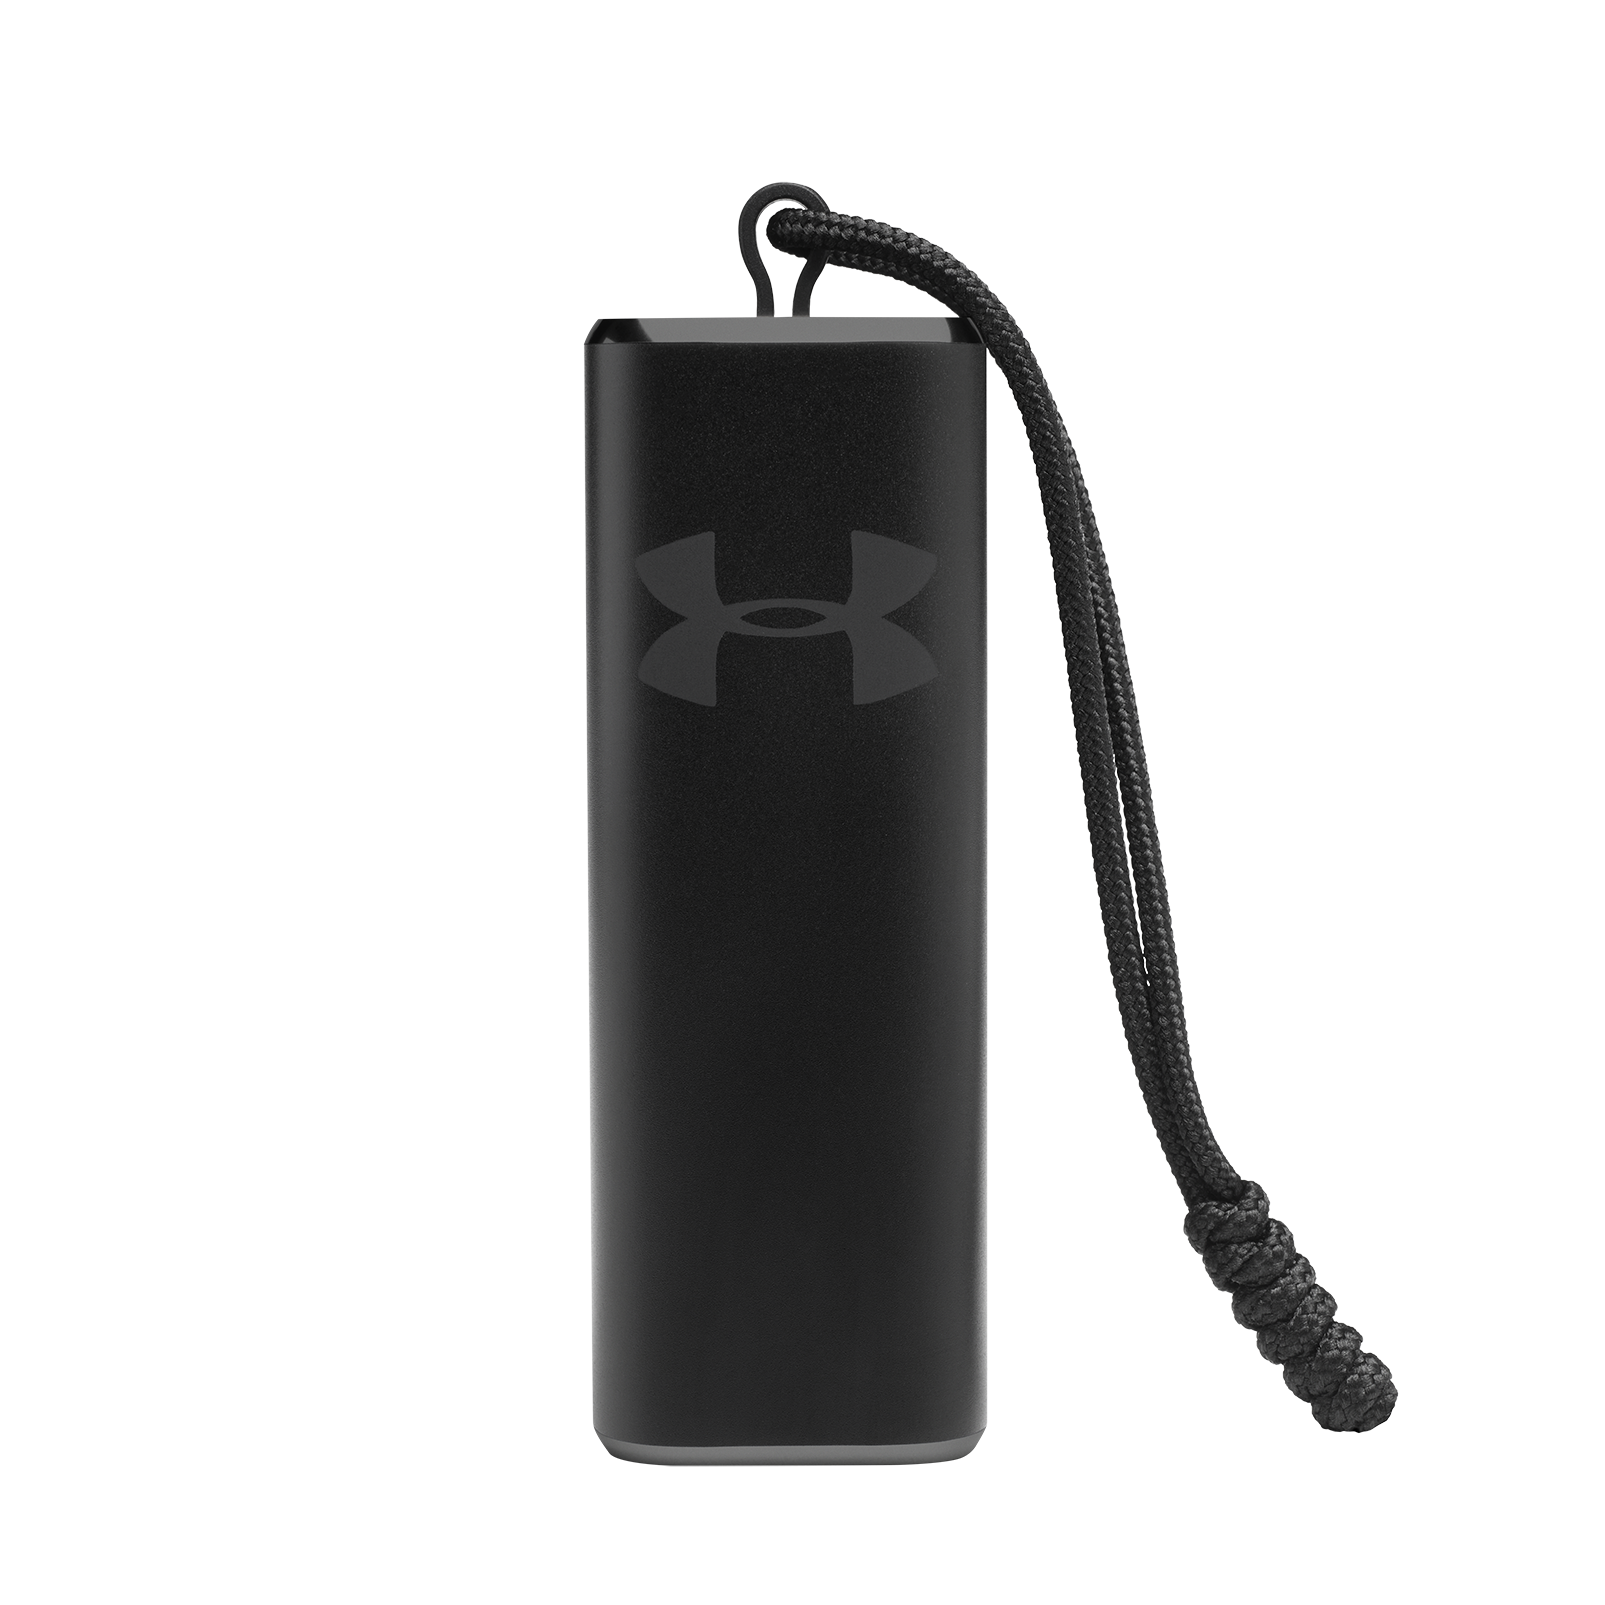 UA True Wireless Flash X - Engineered by JBL - Black - In-Ear Sport Headphones - Detailshot 6